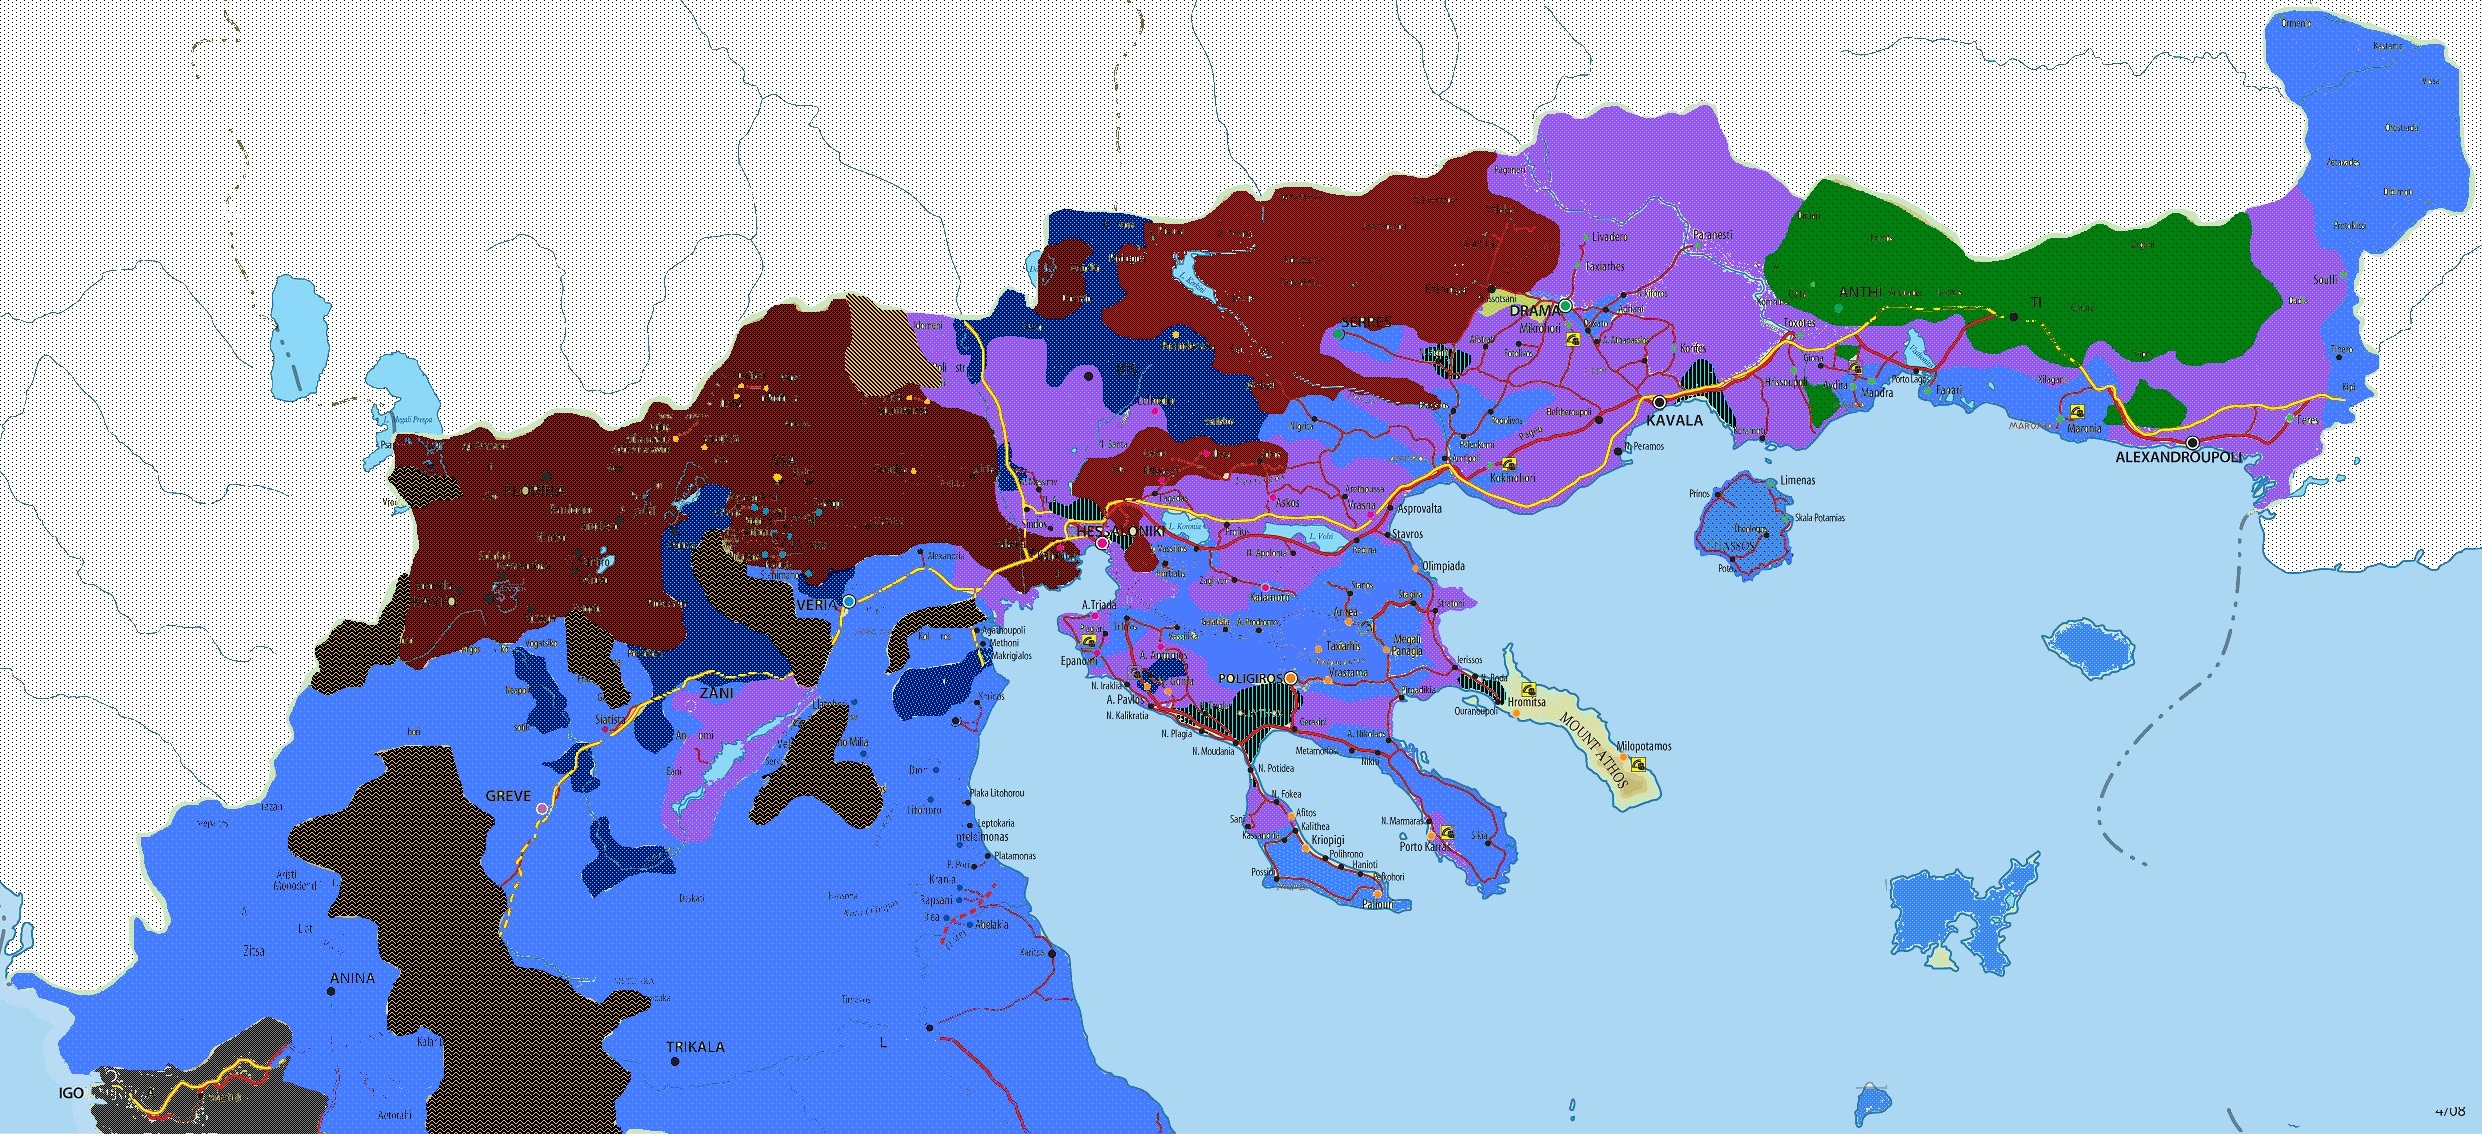 Ethnic groups in Greece